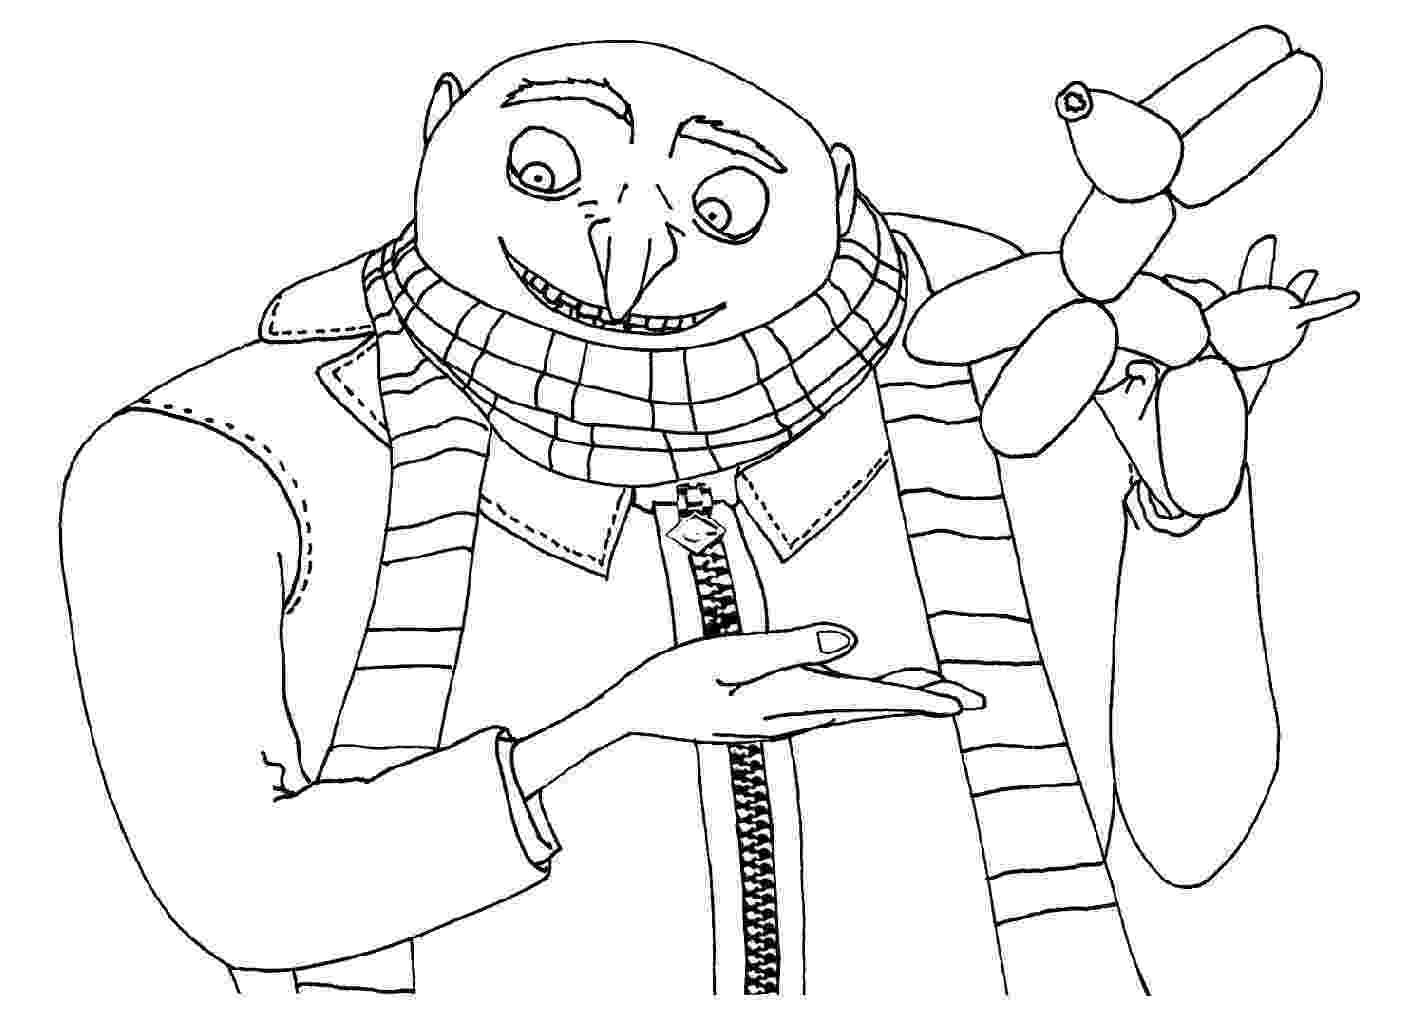 despicable me printables despicable me 3 coloring pages to download and print for free printables despicable me